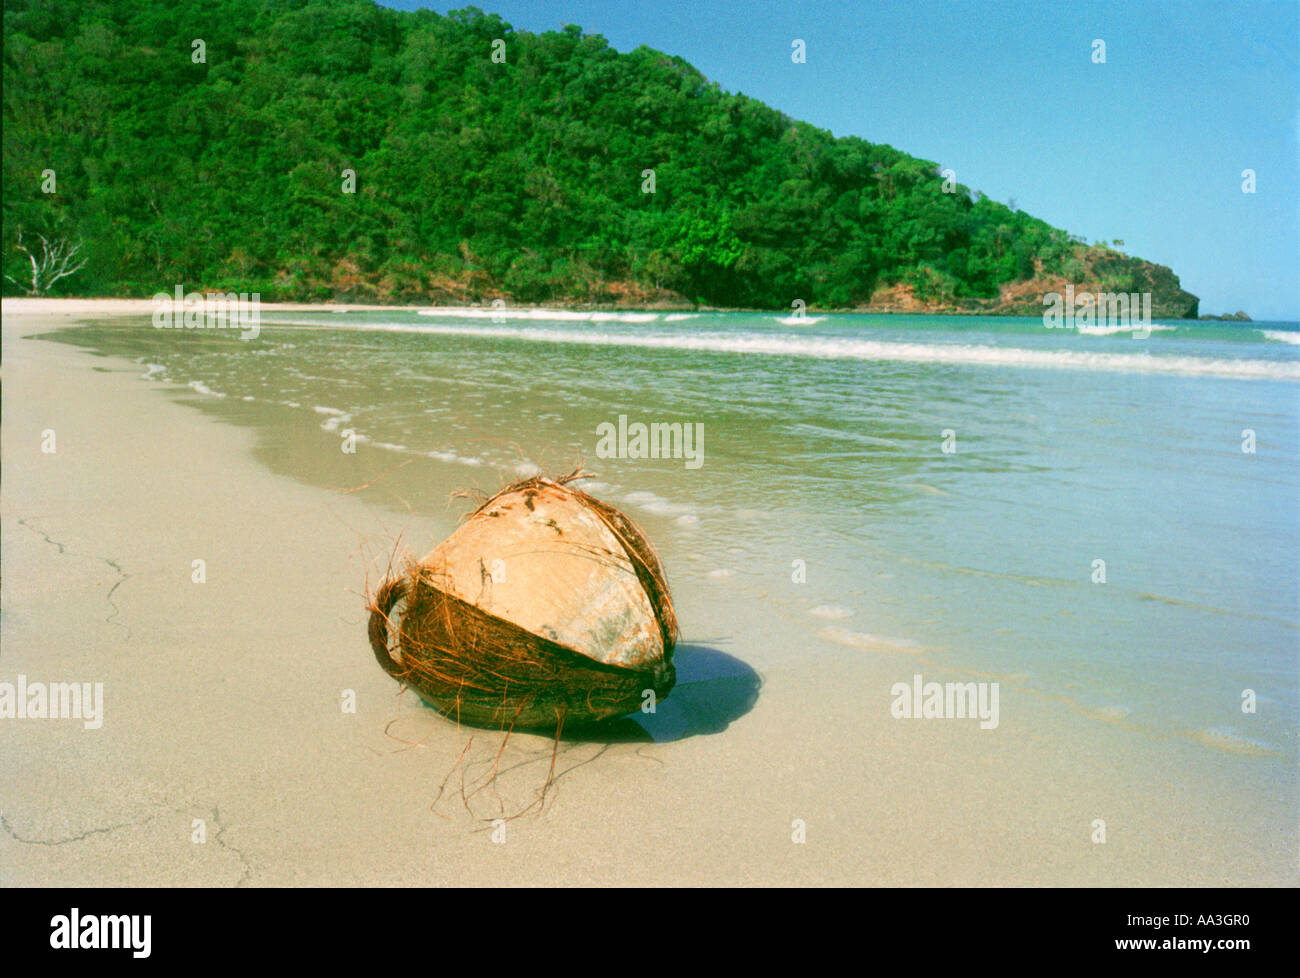 At the idyllic beach of CAPE TRIBULATION north of Cairns the dense tropical rainforest meets The Great Barrier Reef - Stock Image